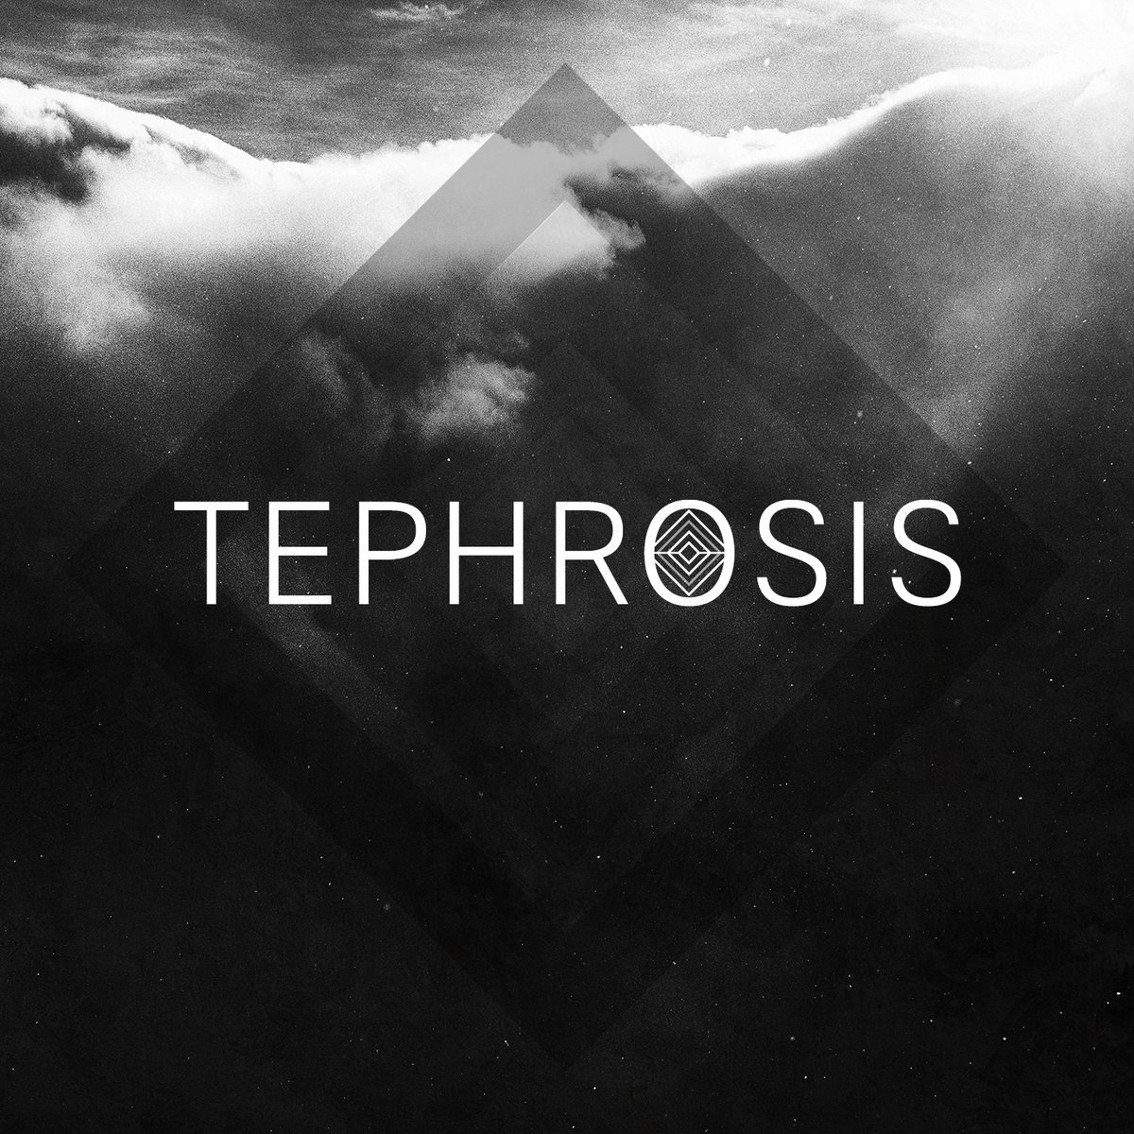 Belgian dark ambient project Tephrosis to release full album in April